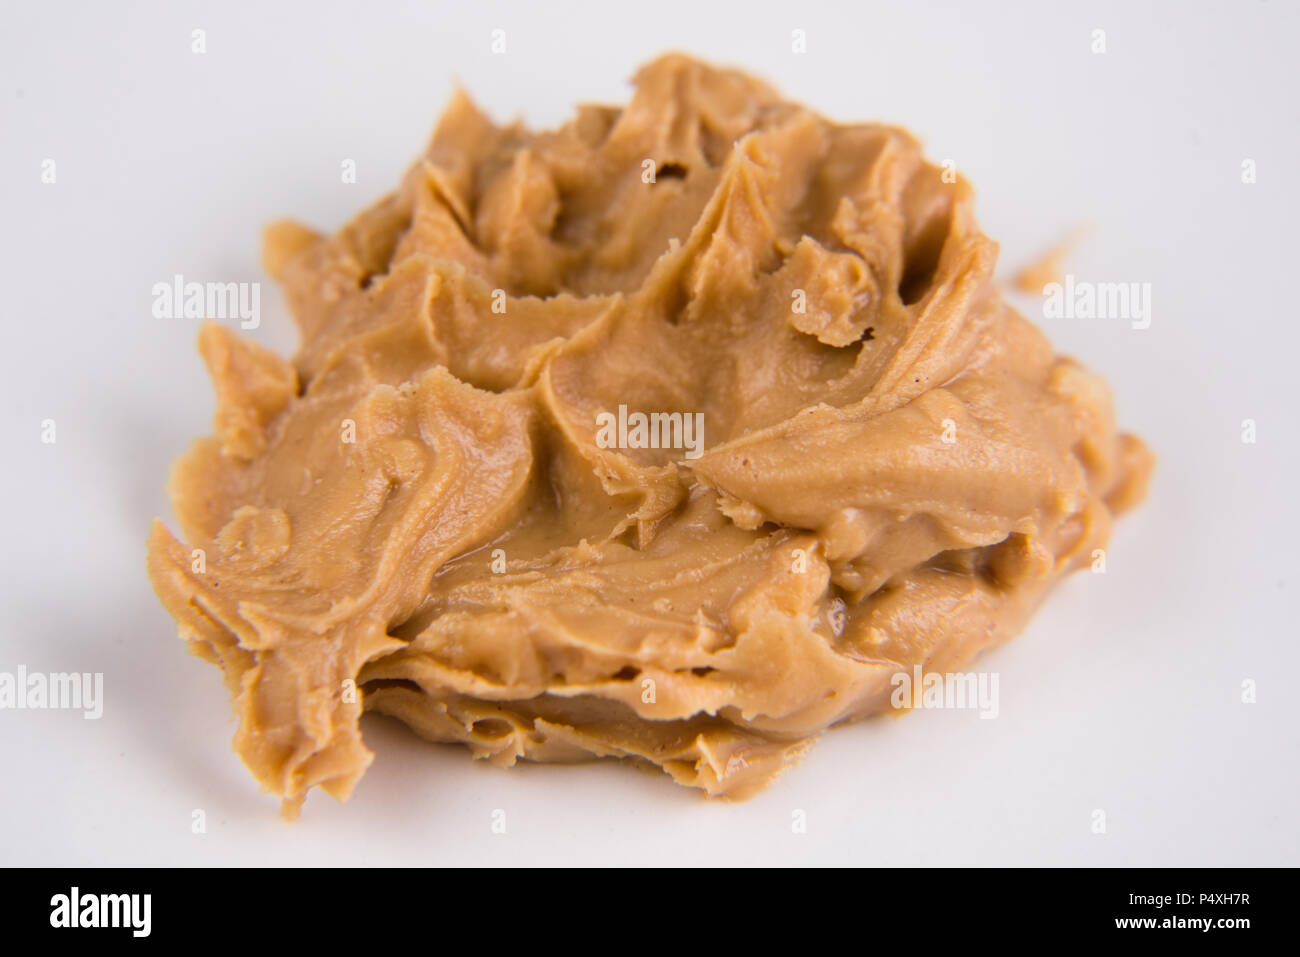 closeup of a peanut butter over white background. selective focus - Stock Image